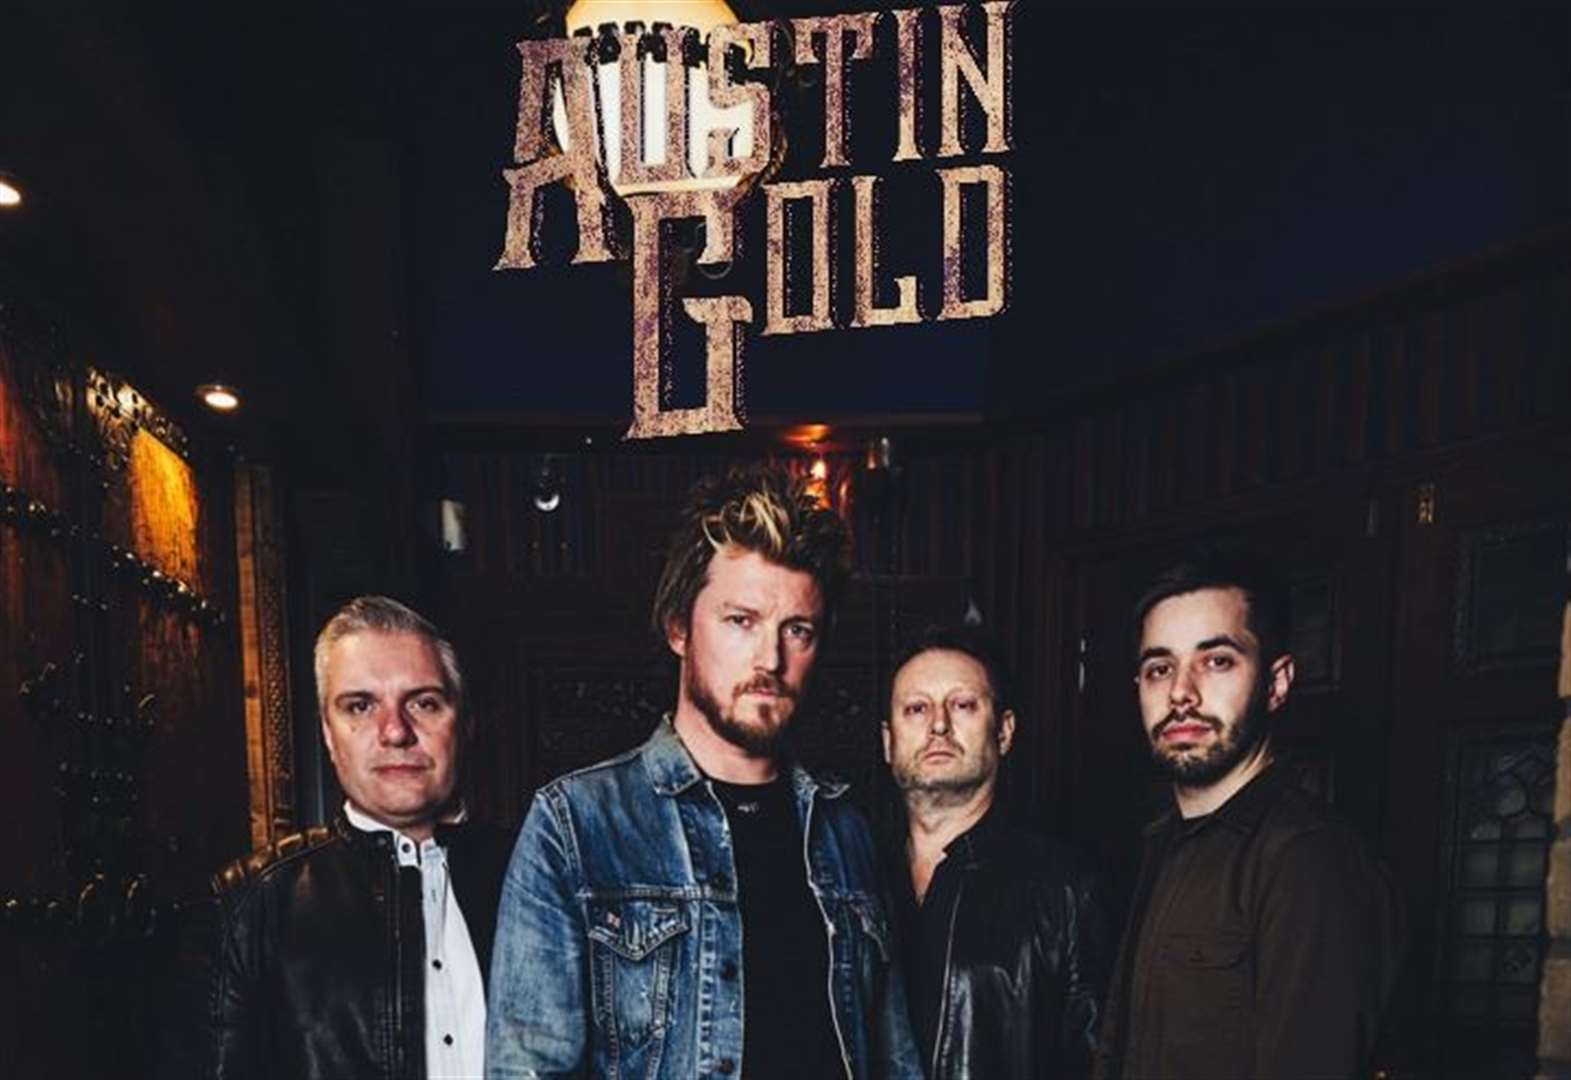 Party with Austin Gold at Stamford Corn Exchange on Saturday